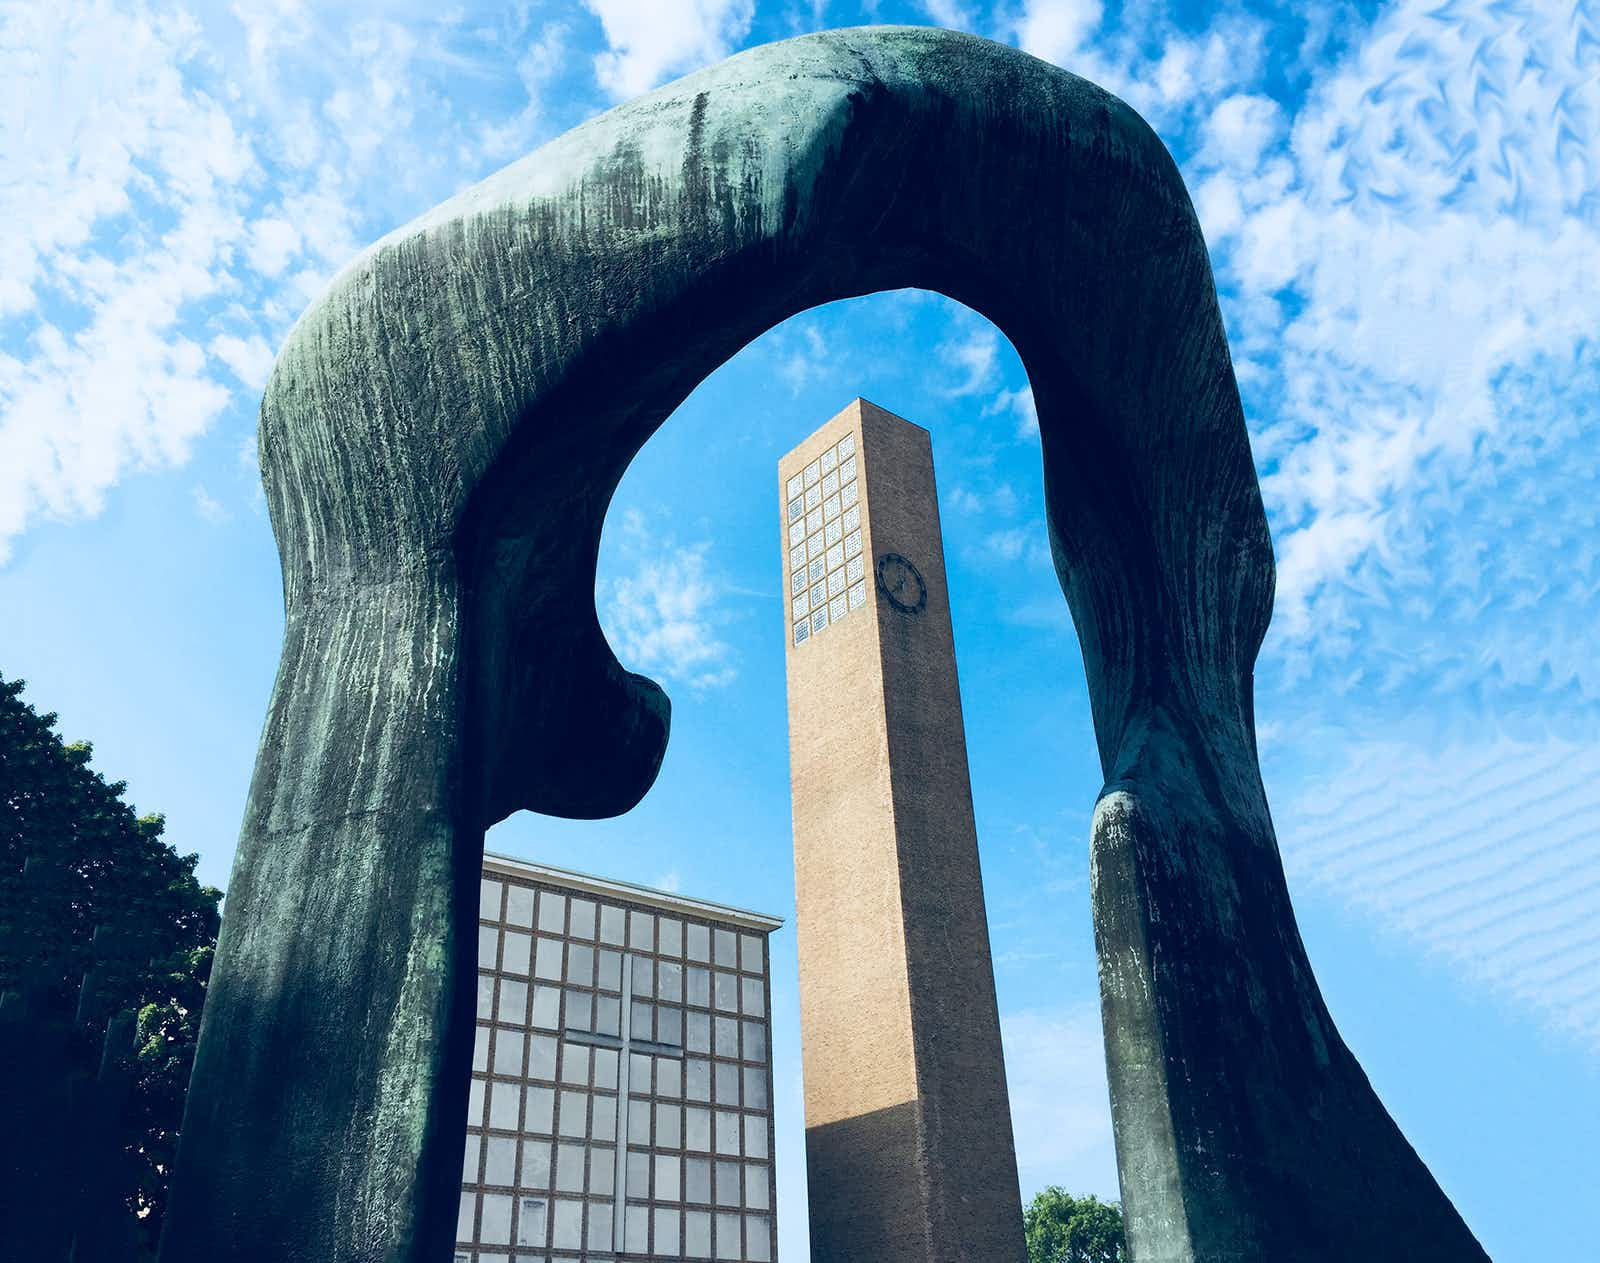 A mid-century modern church bell tower is framed by a blue abstract sculpture by Henry Moore in Columbus Indiana on a sunny day